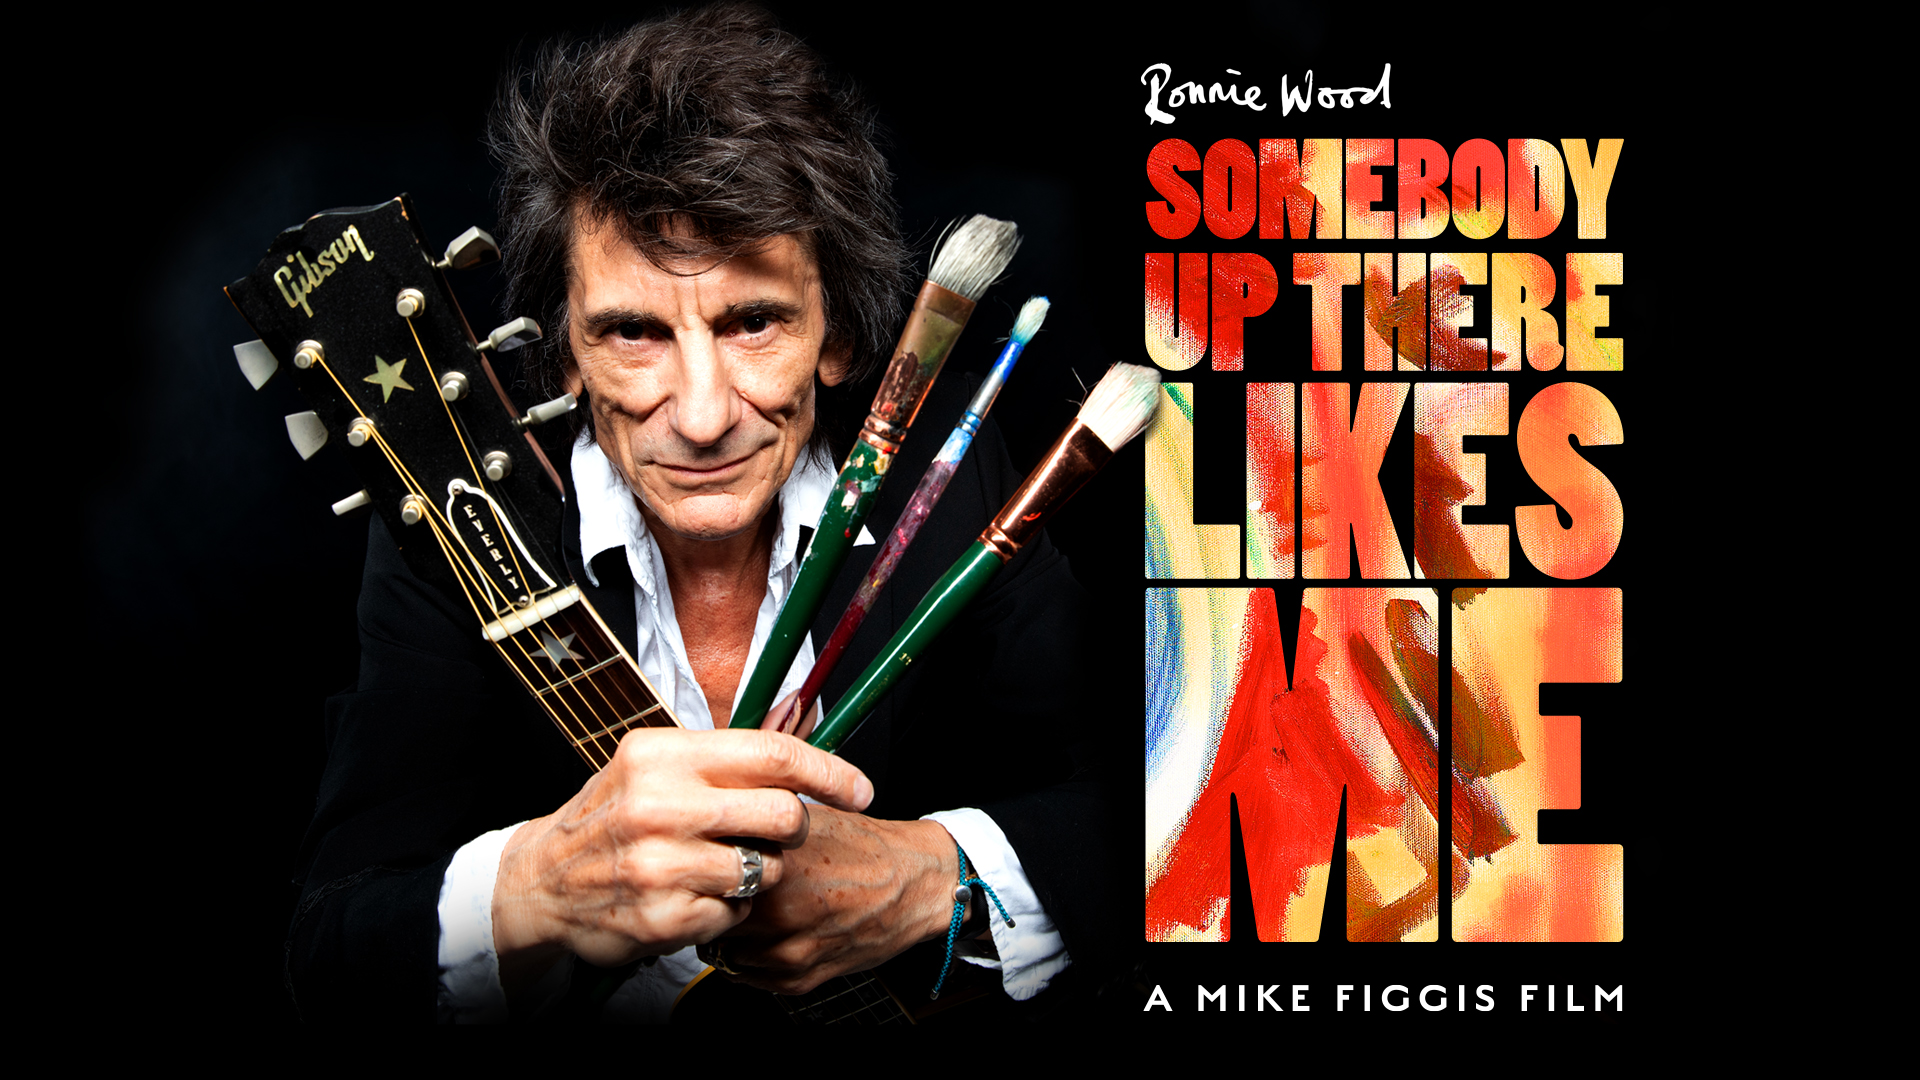 Ronnie Wood - Someone Up There Likes Me